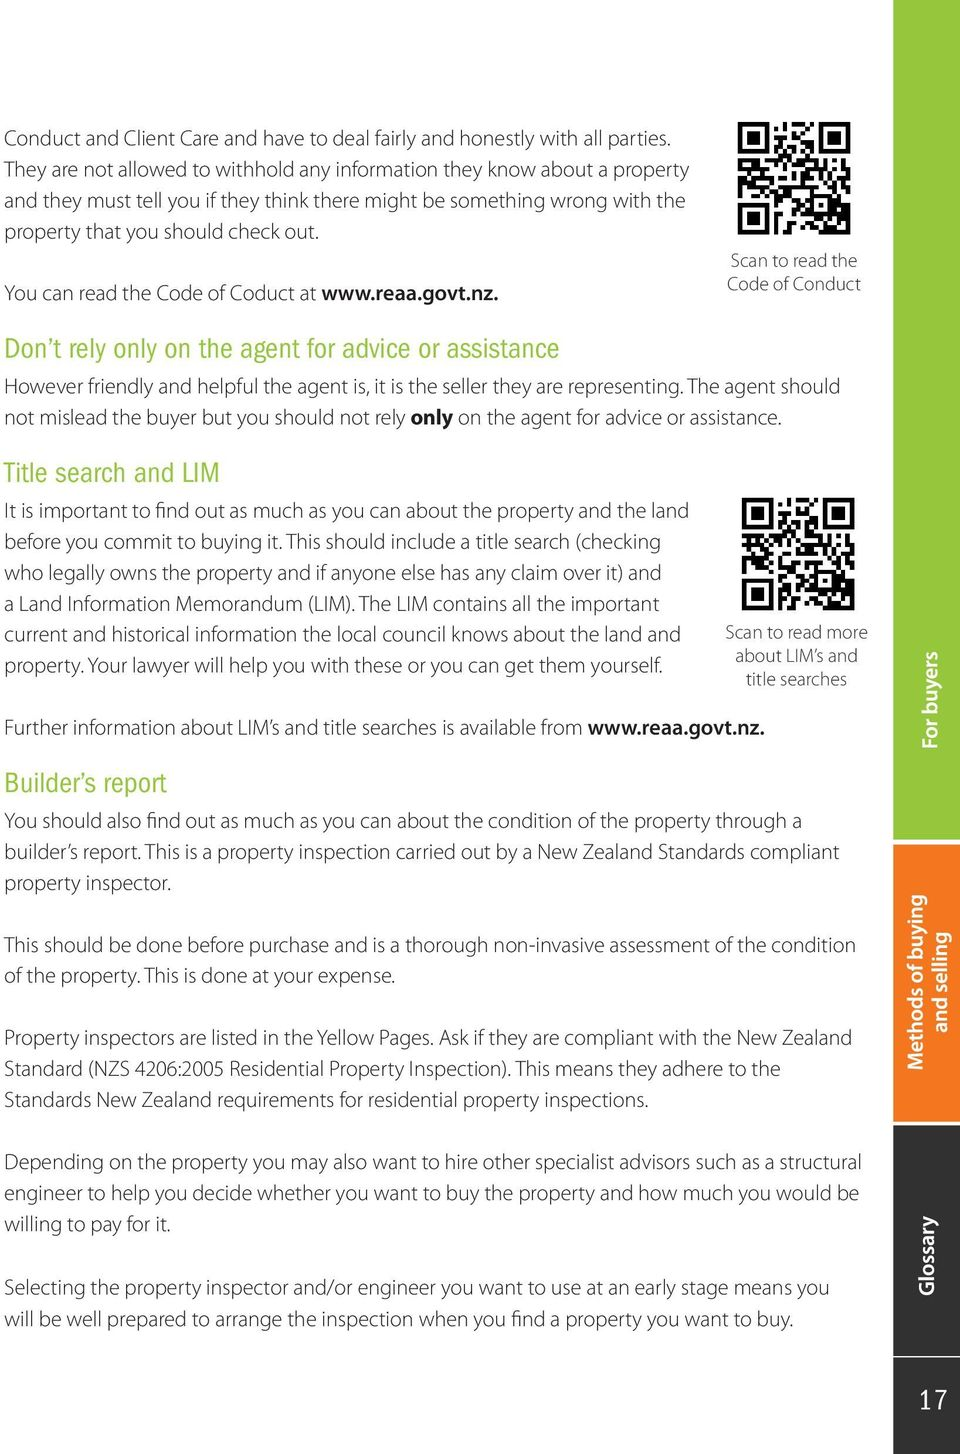 You can read the Code of Coduct at www.reaa.govt.nz.